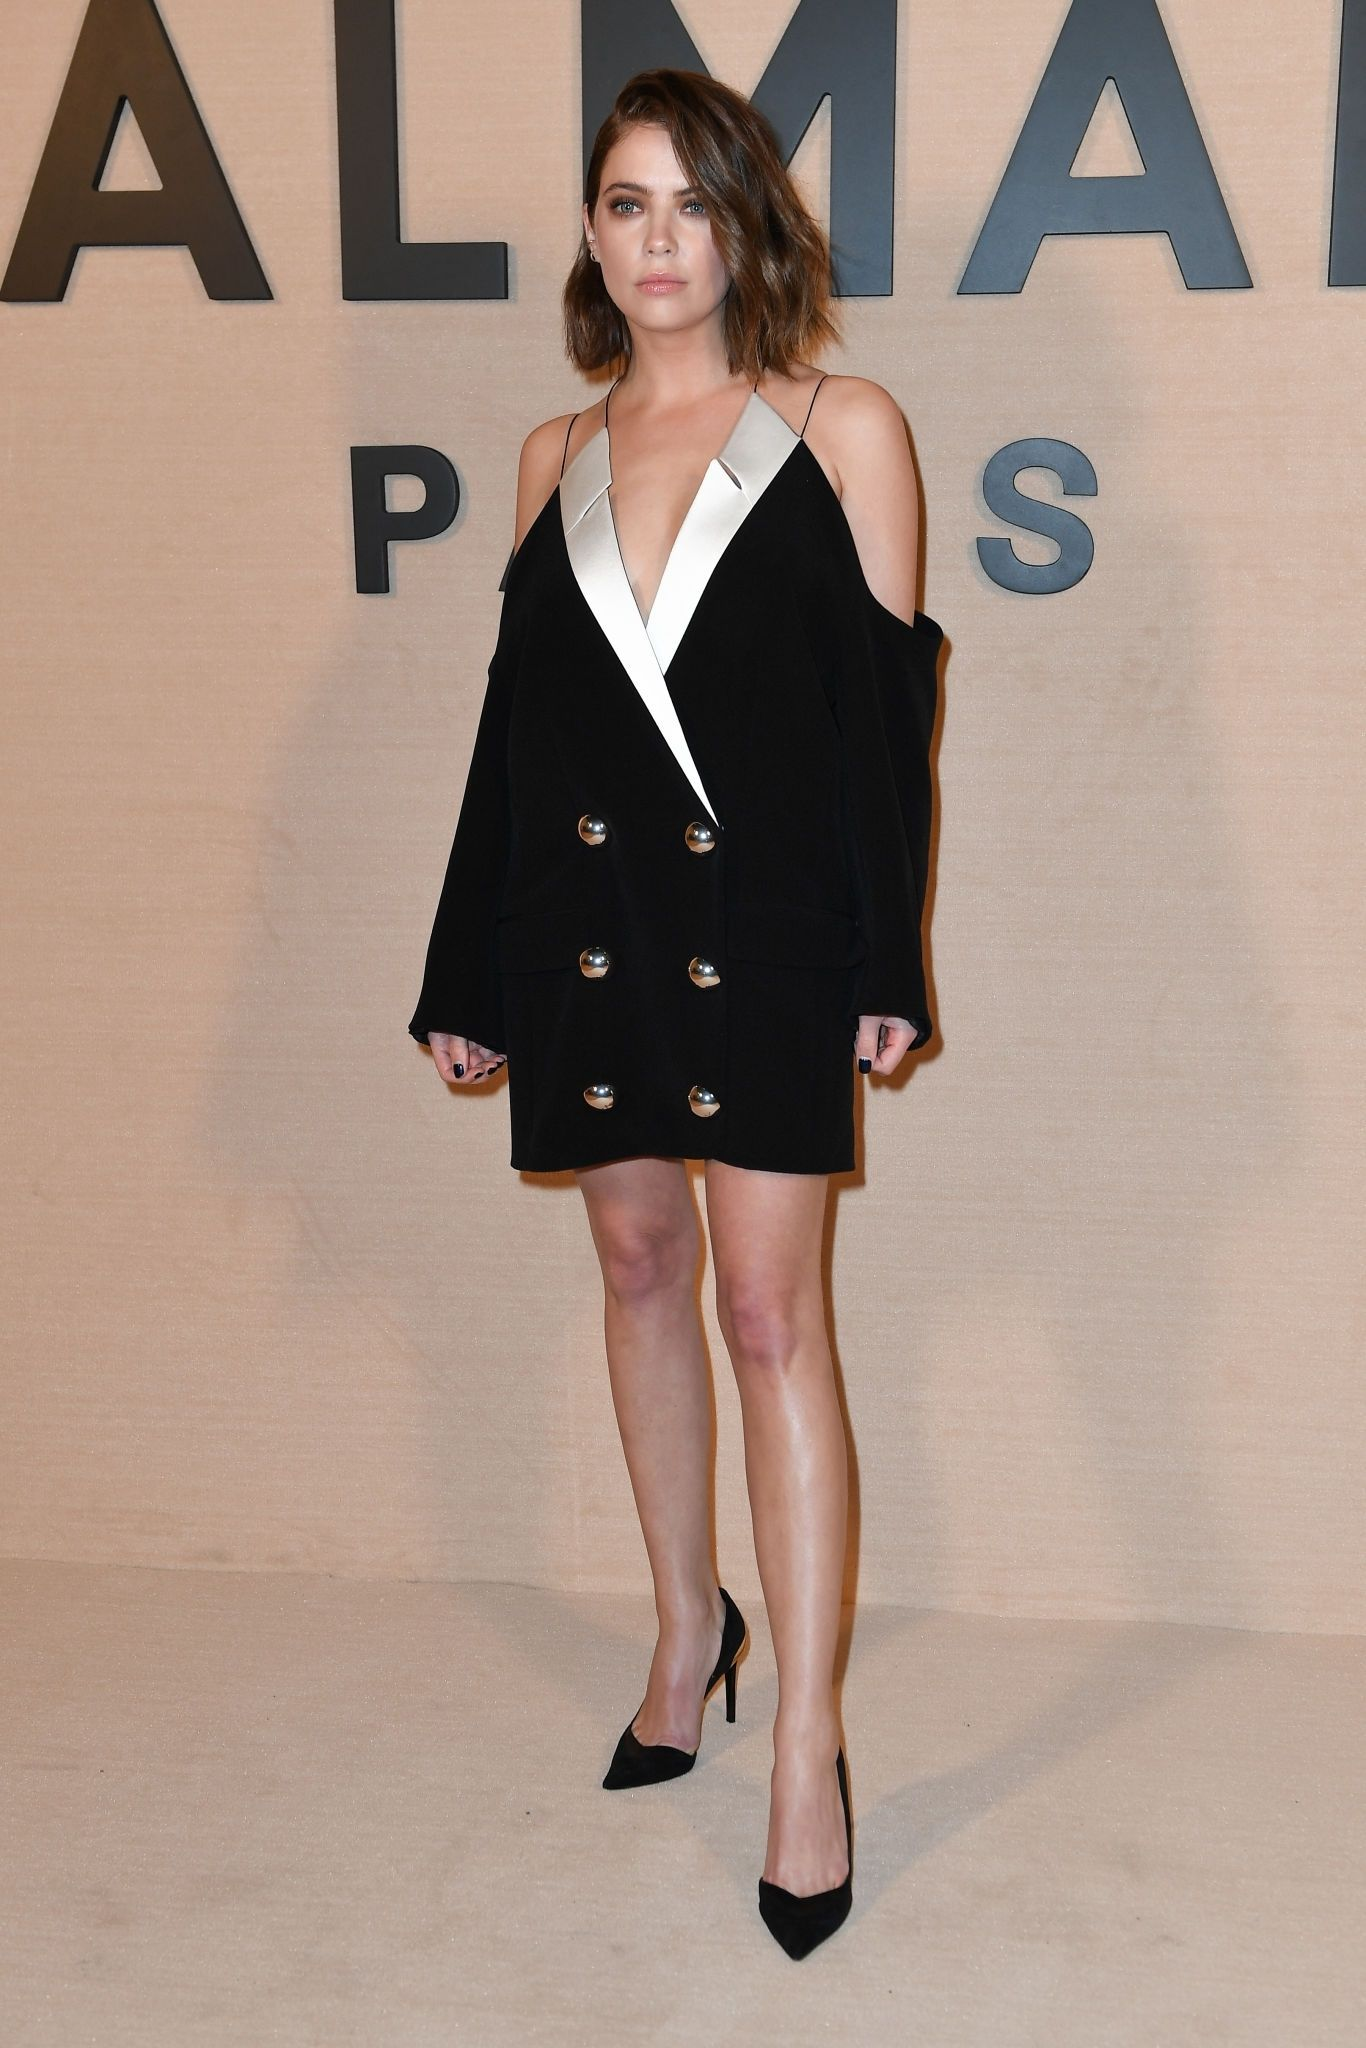 Ashley Benson at Balmain Show at Paris Fashion Week Womenswear Fall/Winter 2020/21